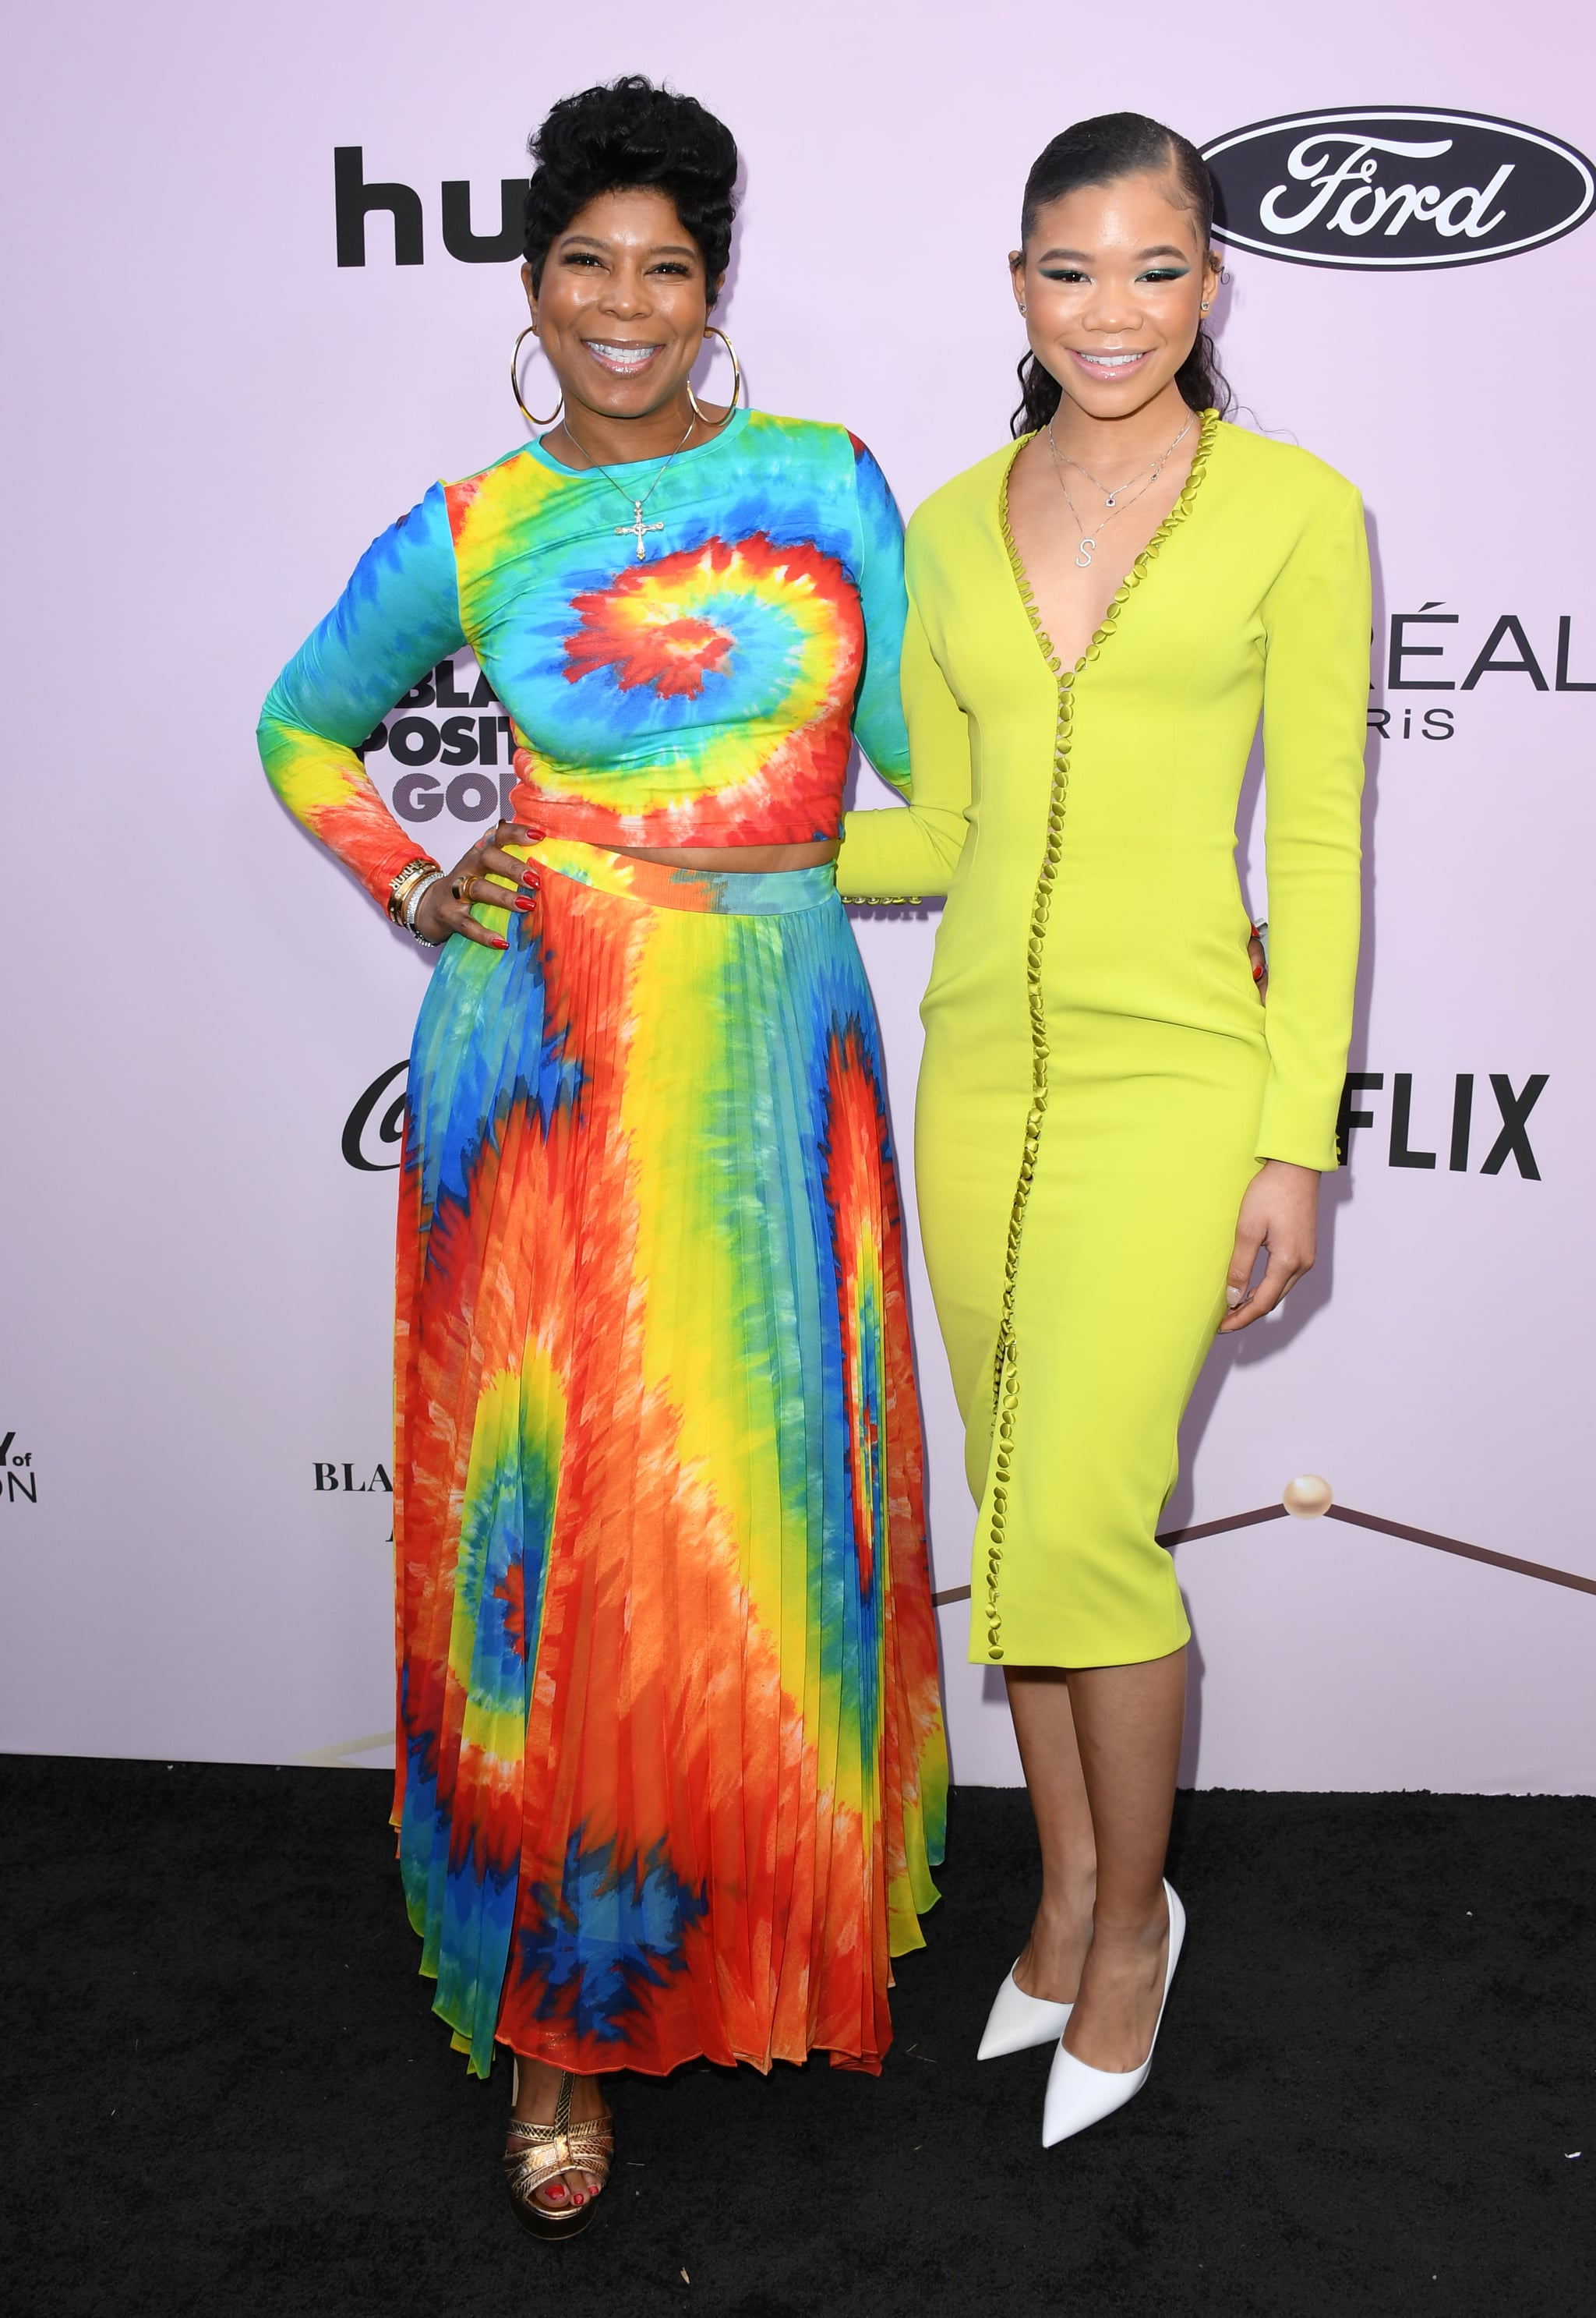 BEVERLY HILLS, CALIFORNIA - FEBRUARY 06:  Robyn Simpson and Storm Reid attend the 13th Annual Essence Black Women In Hollywood Awards Luncheon at the Beverly Wilshire Four Seasons Hotel on February 06, 2020 in Beverly Hills, California. (Photo by Jon Kopaloff/FilmMagic)